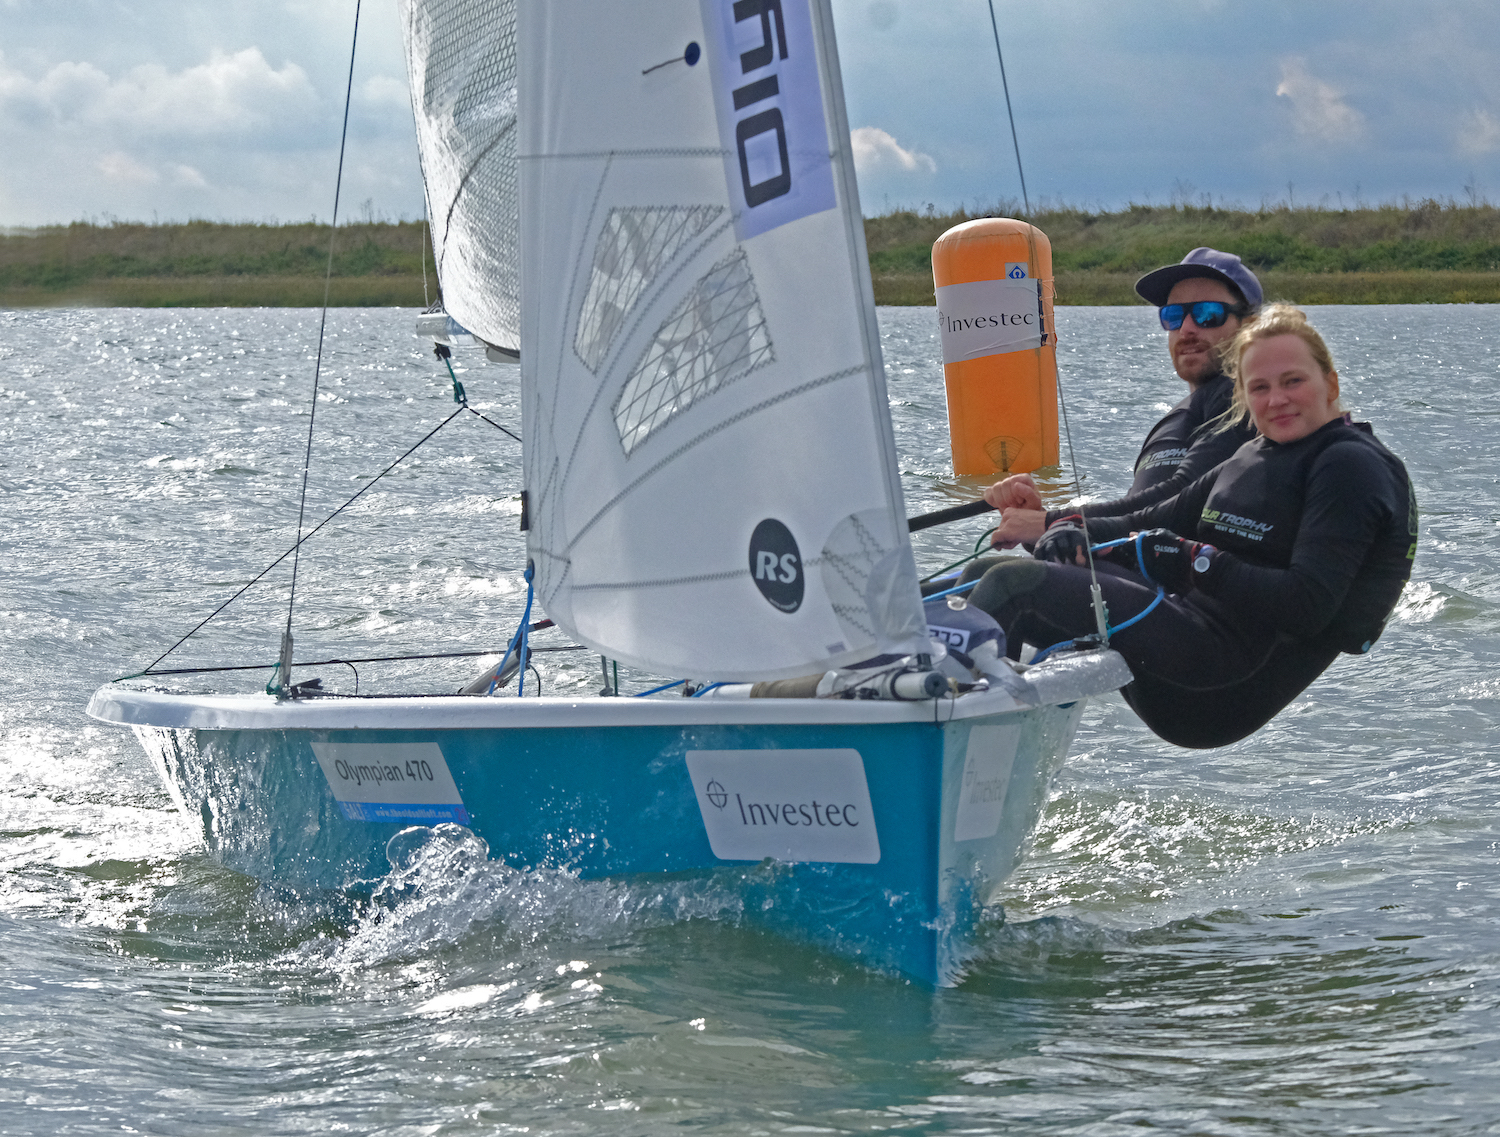 Luke Patience and Mary Henderson Olympian 470 representatives on their way to an overall win – photo Roger Mant